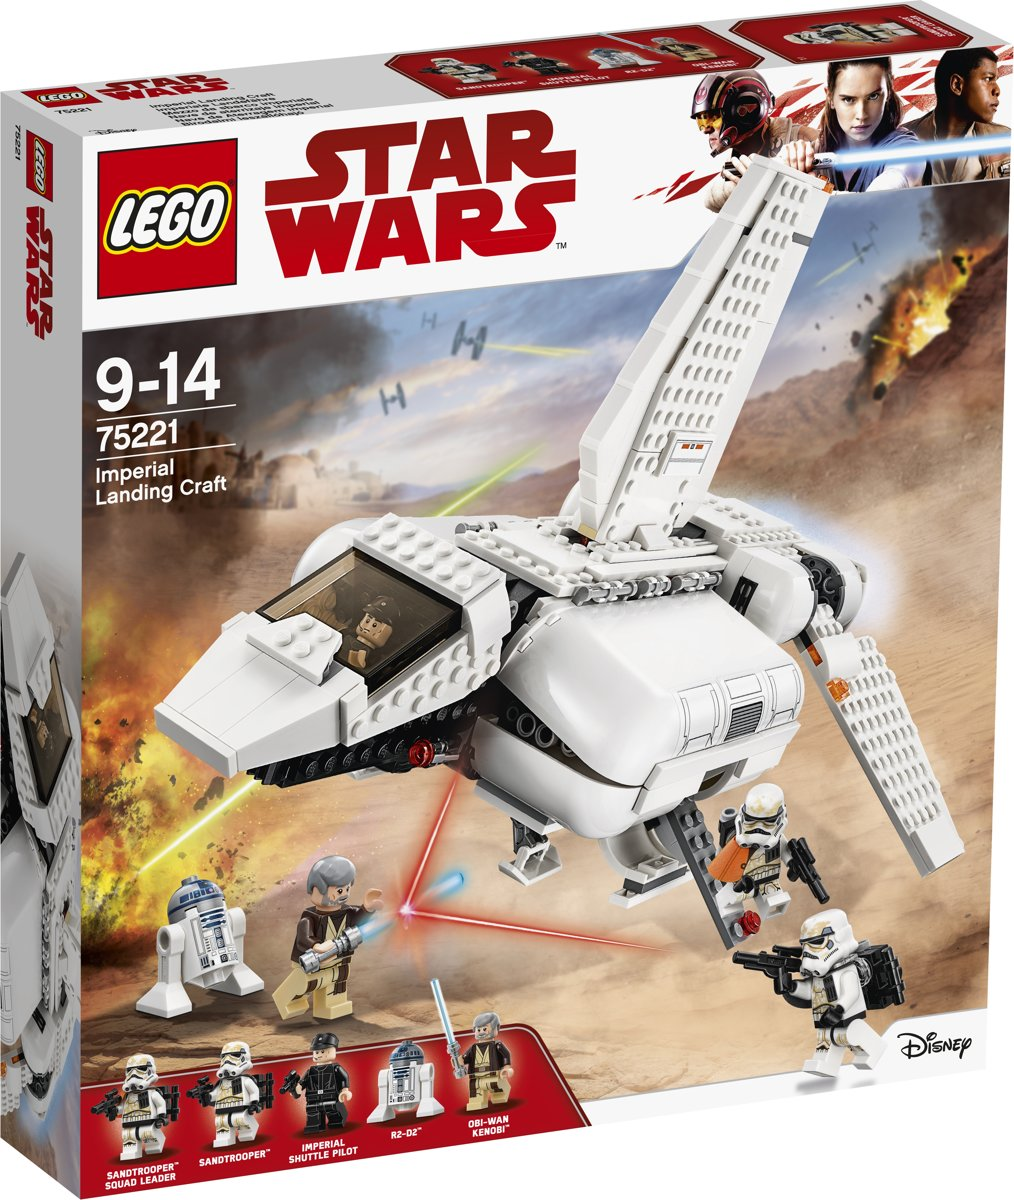 LEGO Star Wars Imperial Landing Craft - 75221